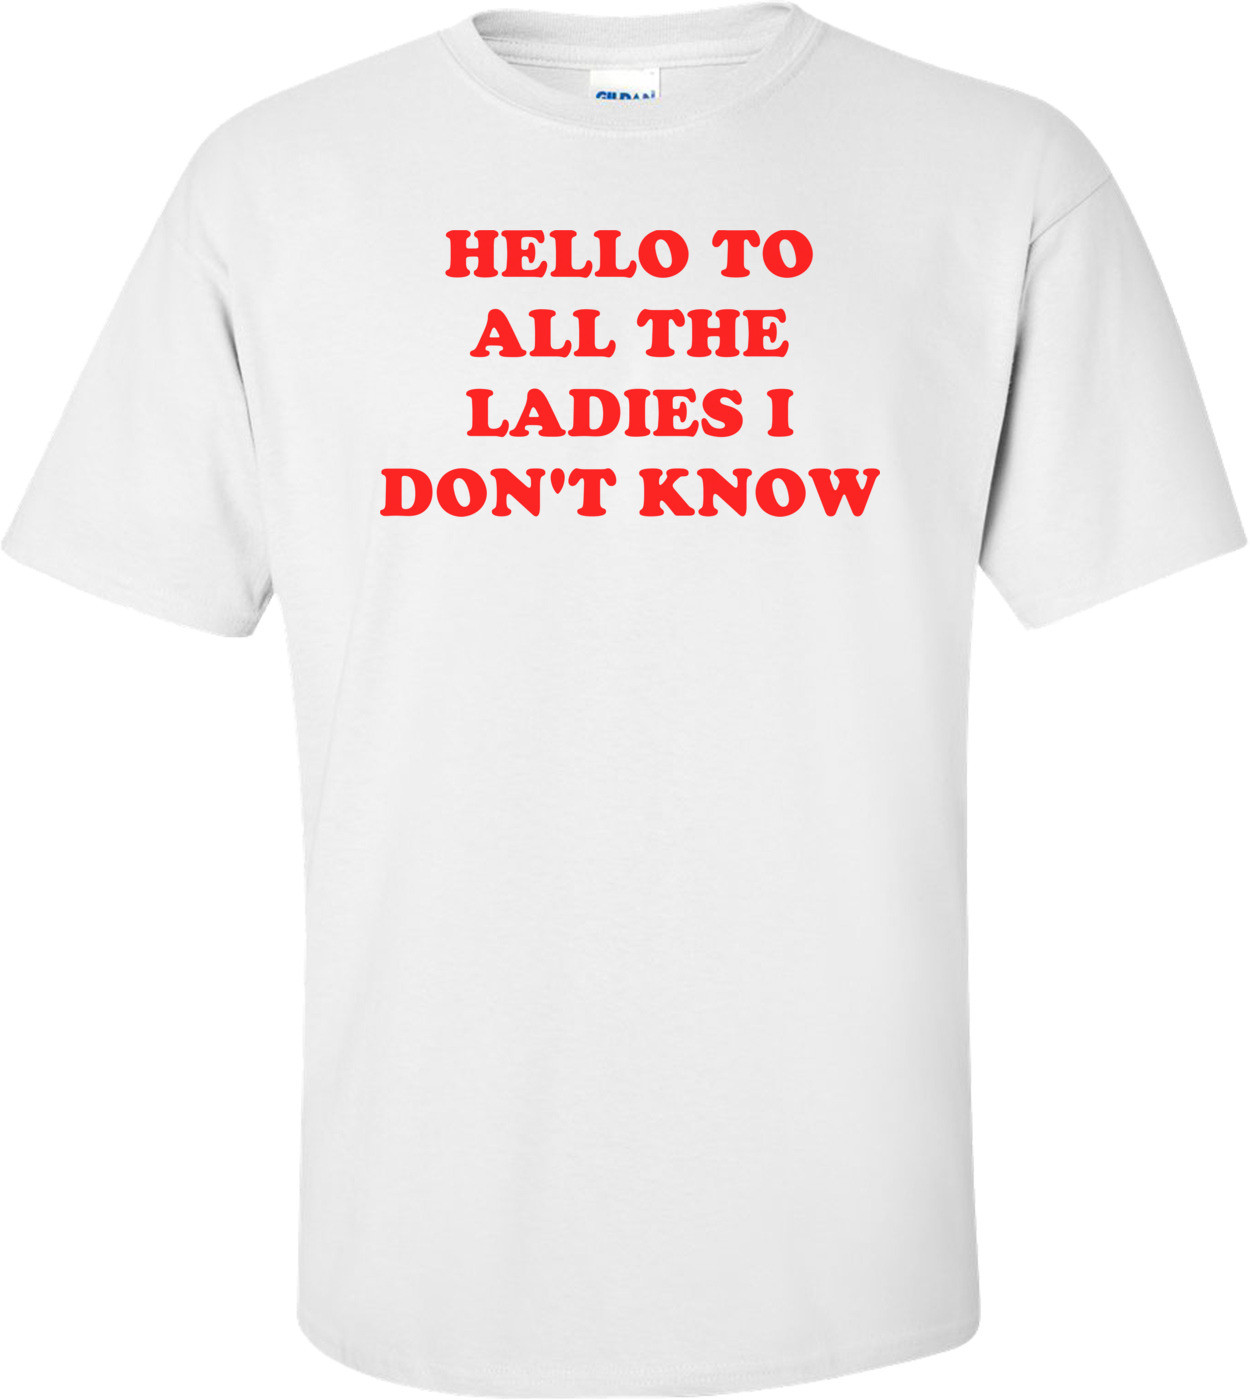 HELLO TO ALL THE LADIES I DON'T KNOW Shirt